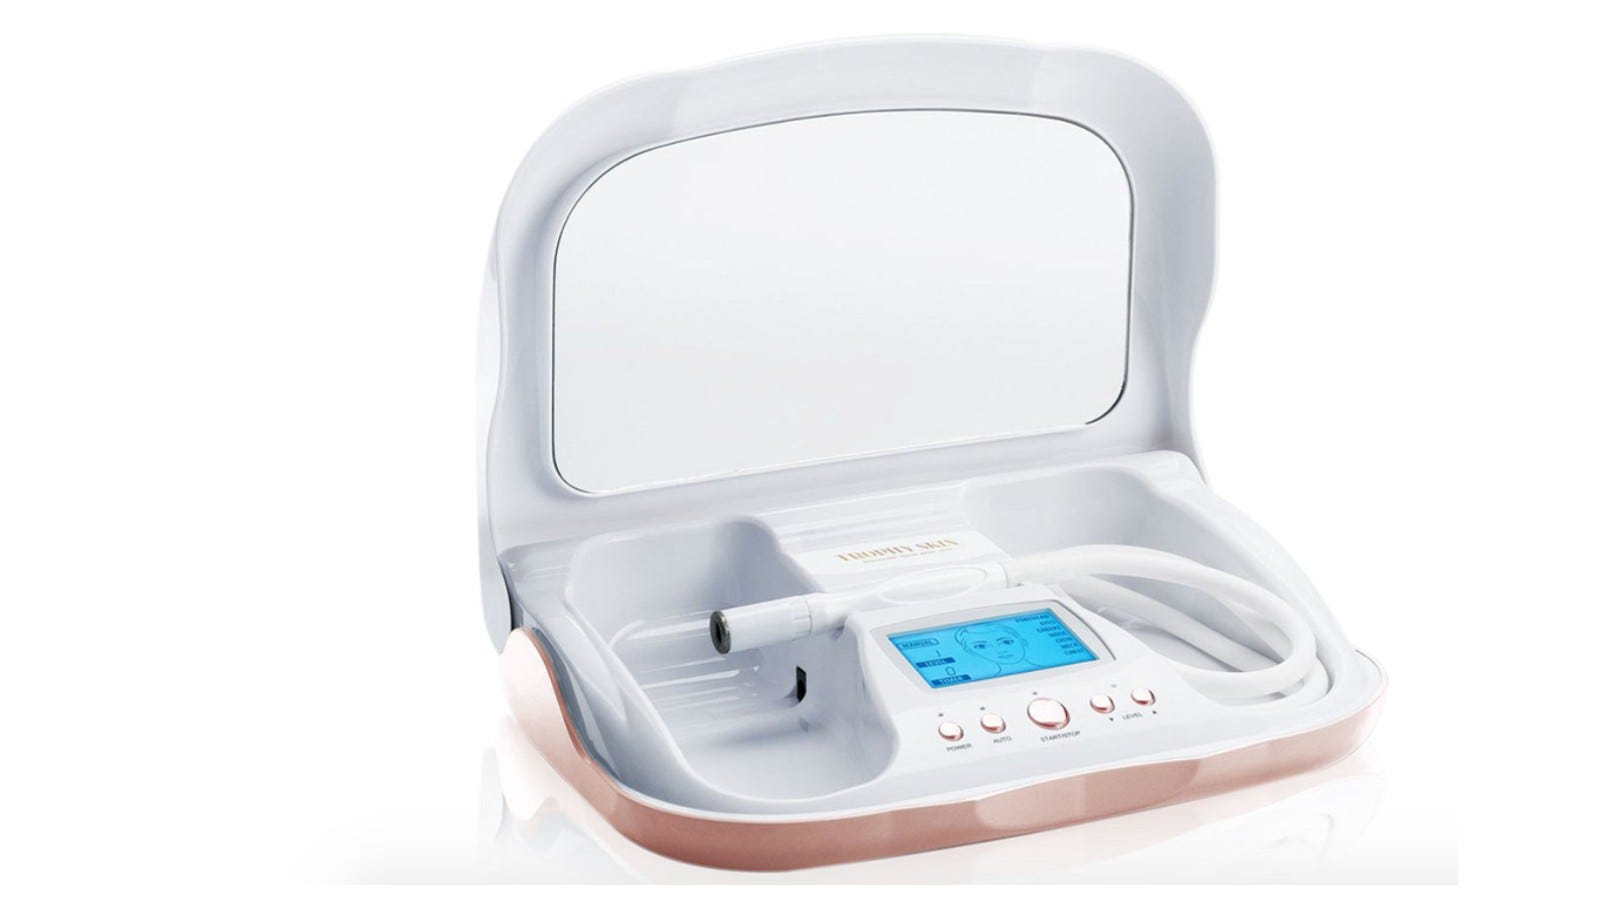 Trophy Skin MicrodermMD At Home Microdermabrasion Machine